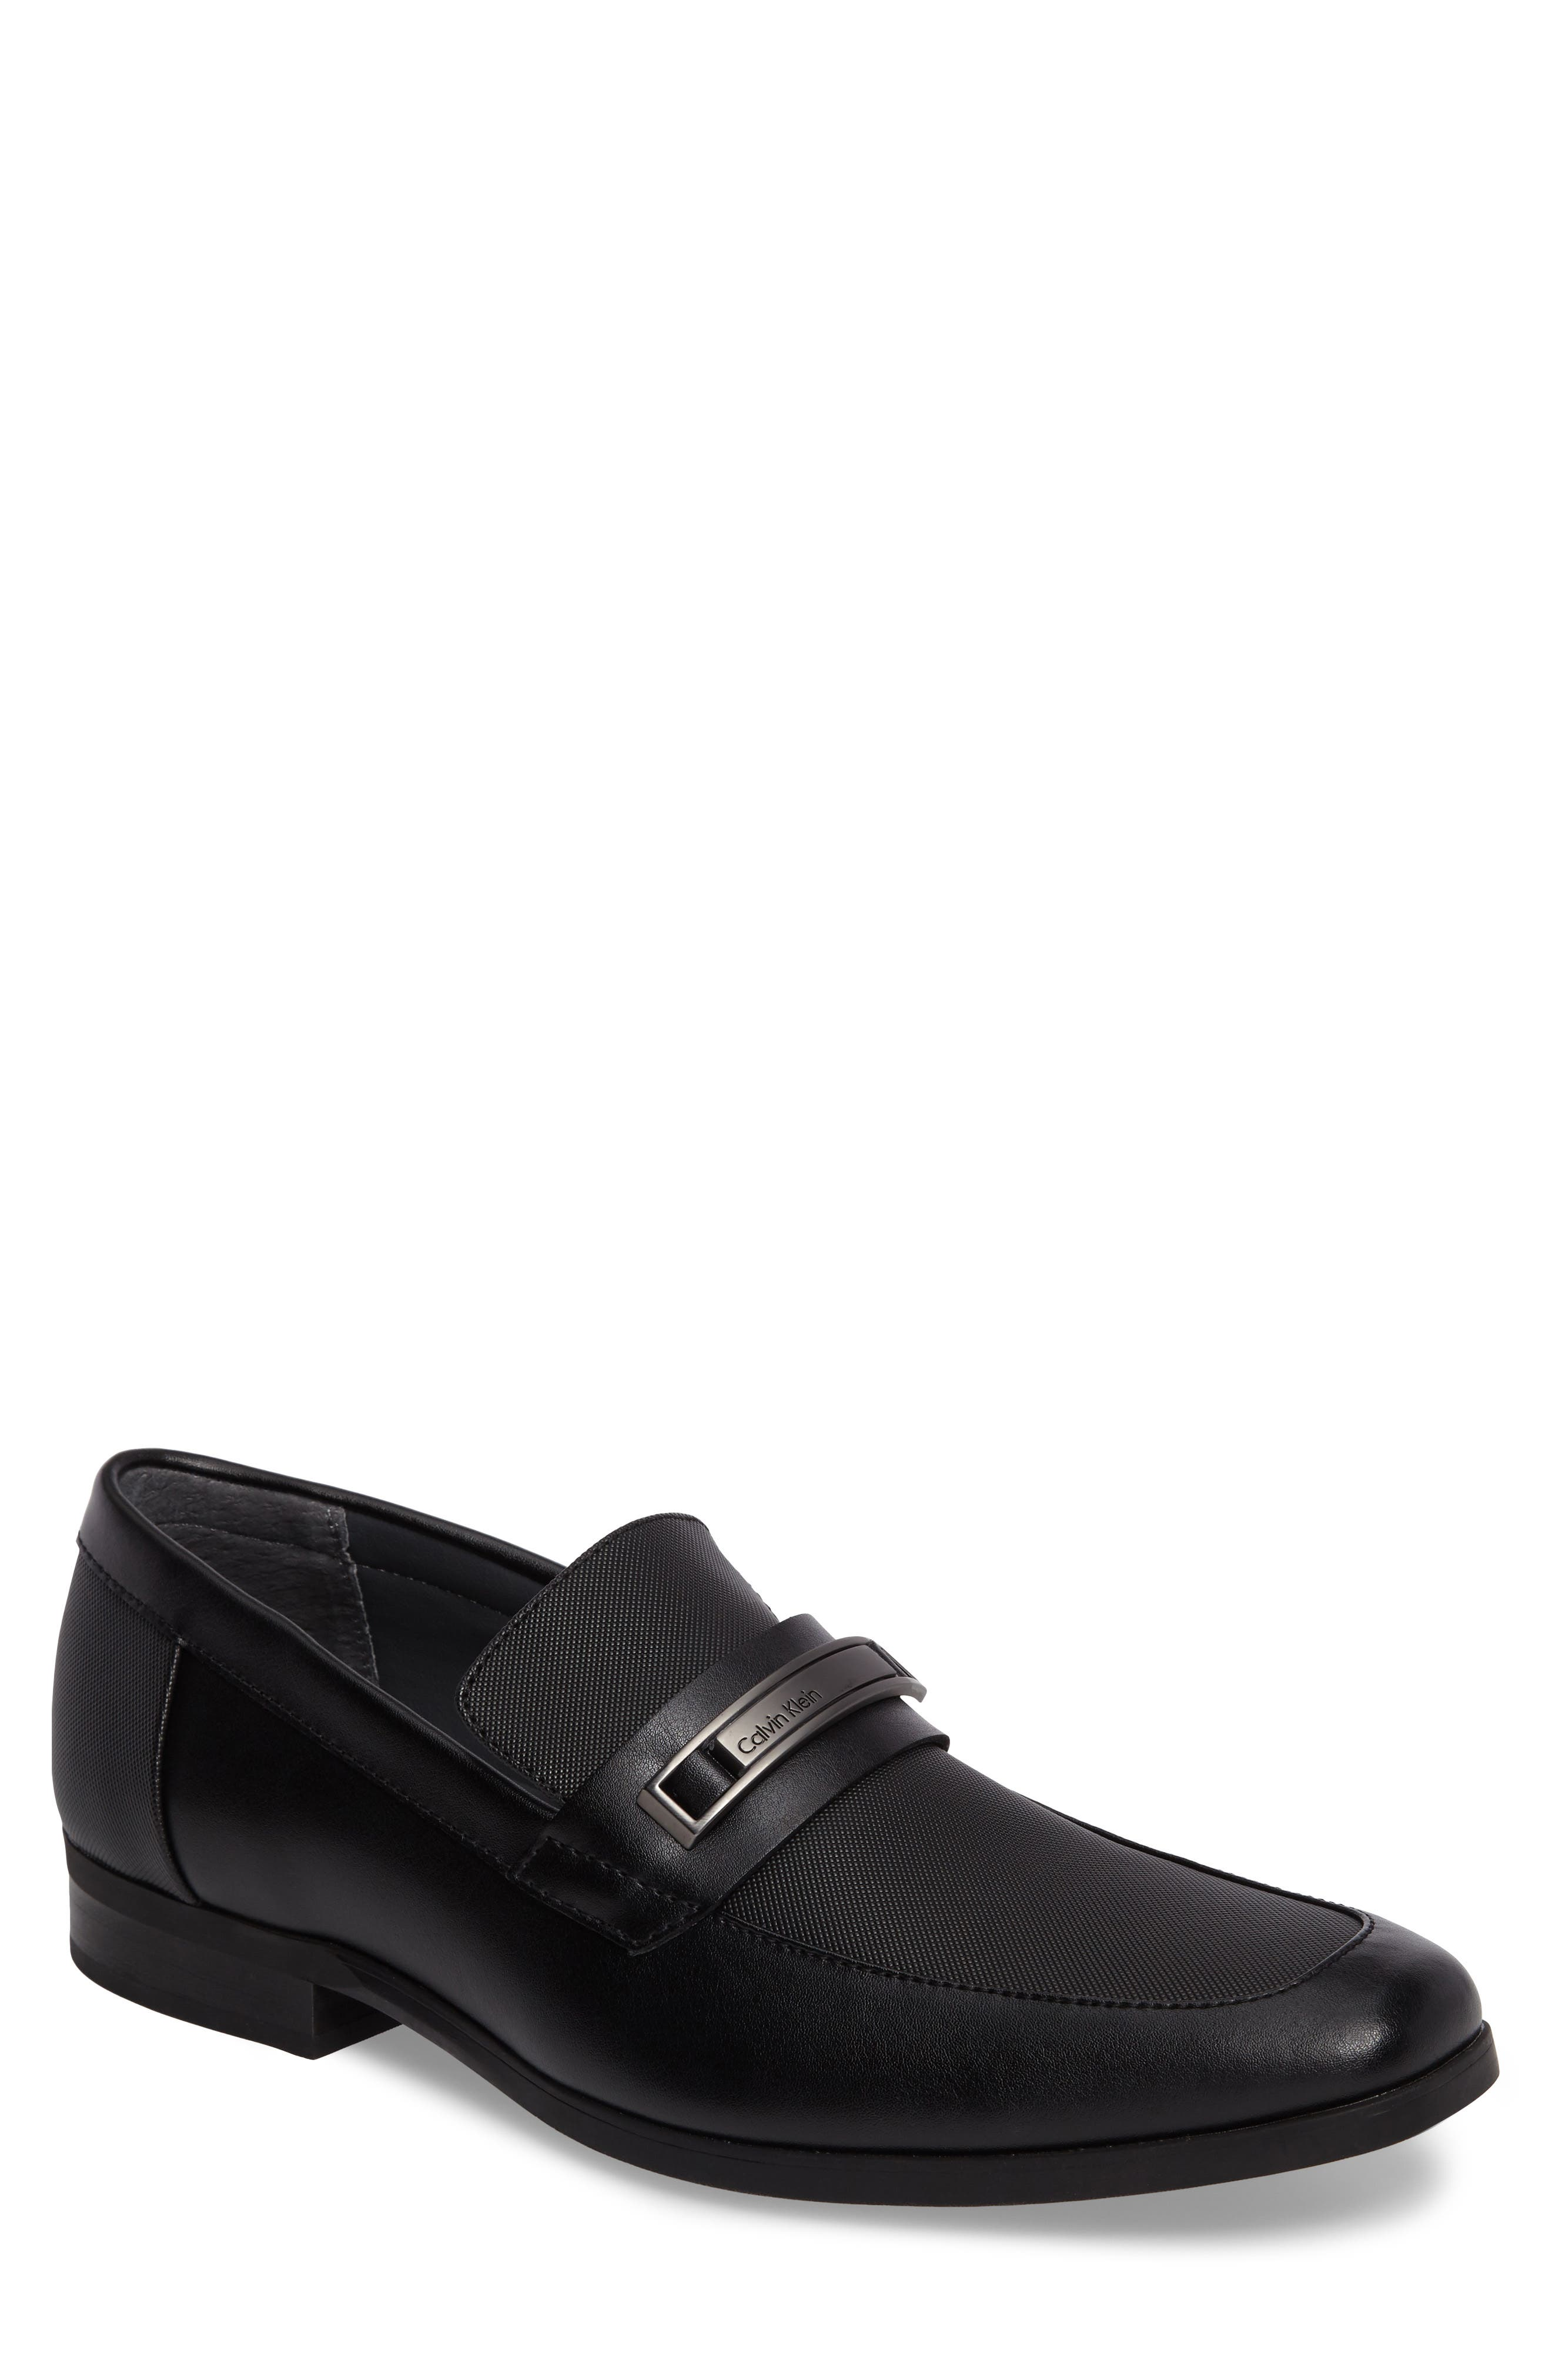 Jameson Emossed Loafer,                             Main thumbnail 1, color,                             BLACK LEATHER